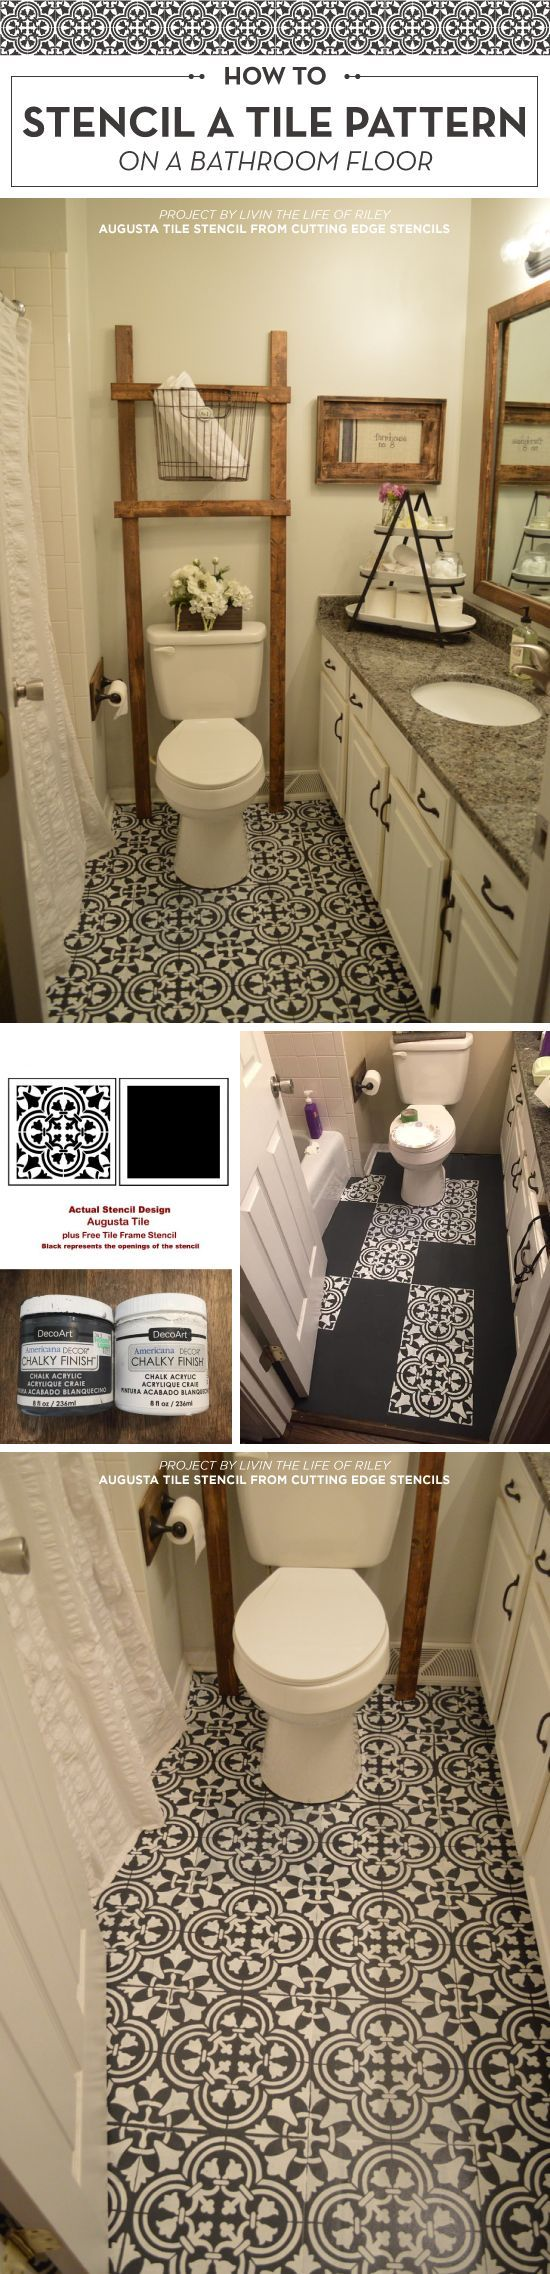 Cutting Edge Stencils shares a DIY stenciled linoleum floor project using the Augusta Tile Stencil pattern. http://www.cuttingedgestencils.stfi.re/augusta-tile-stencil-design-patchwork-tiles-stencils.html